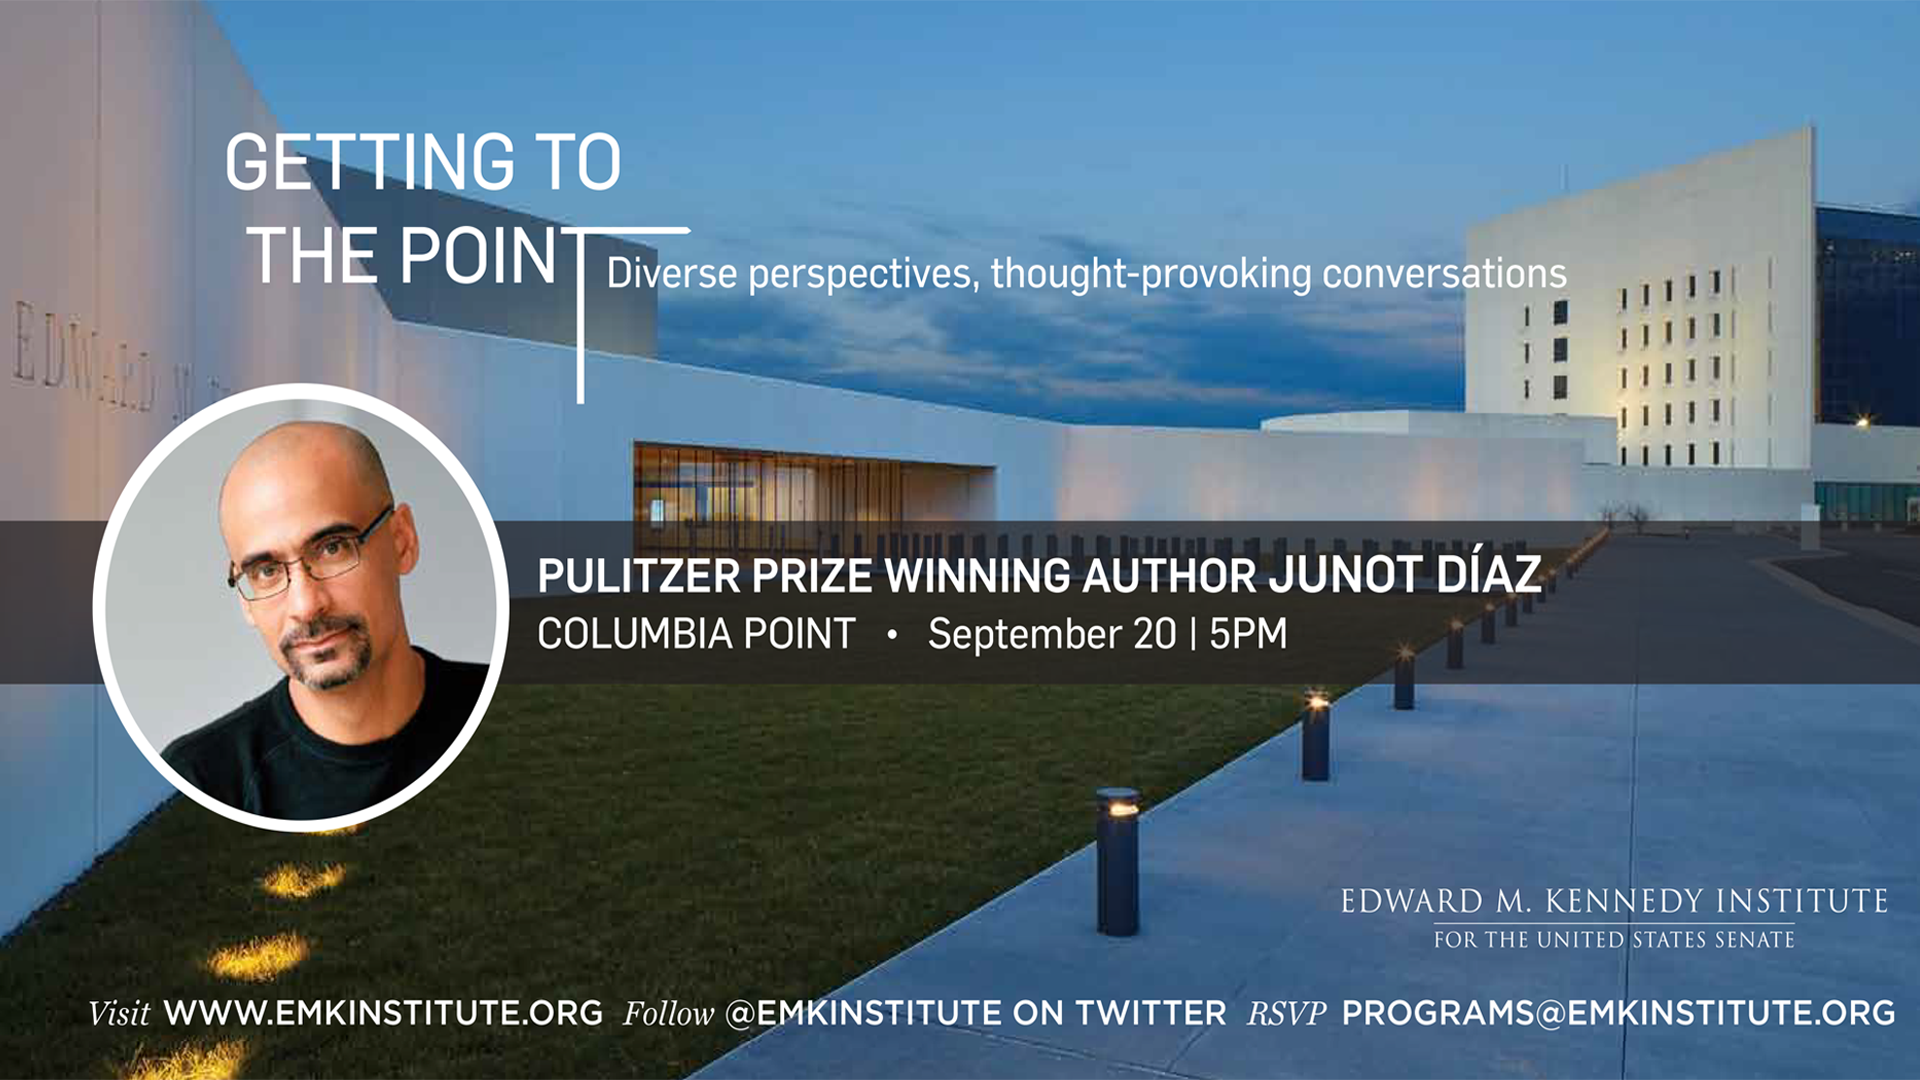 Getting to the Point with Junot Díaz